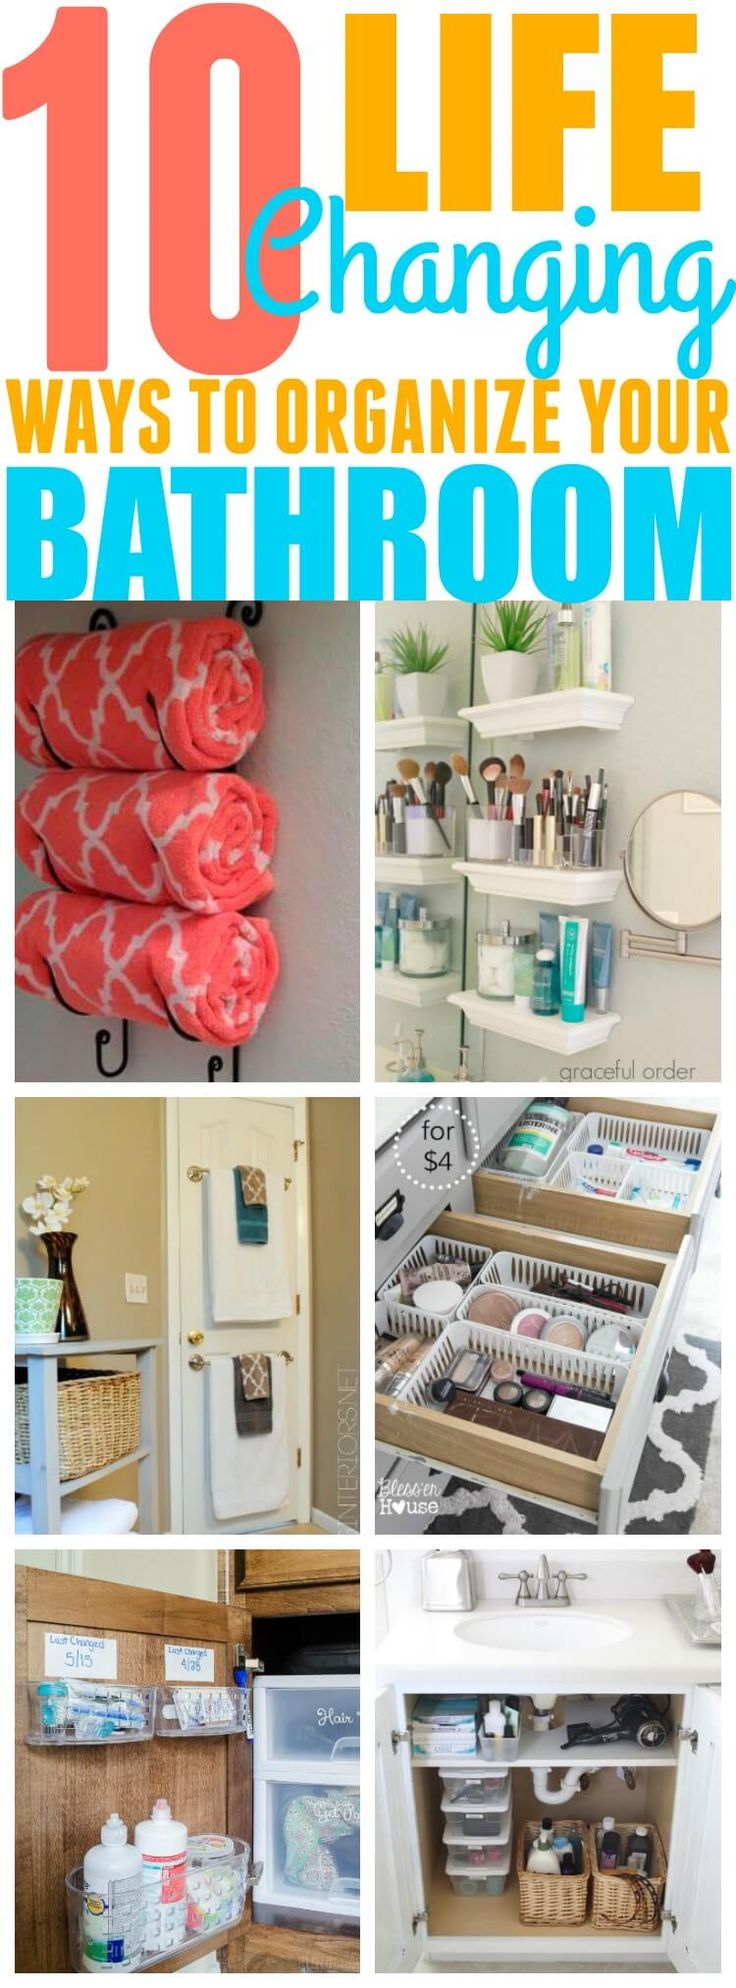 These 10 bathroom organization hacks have helped me organize my bathroom! I never would've been able to organize my bathroom without these hacks! You have to try them!